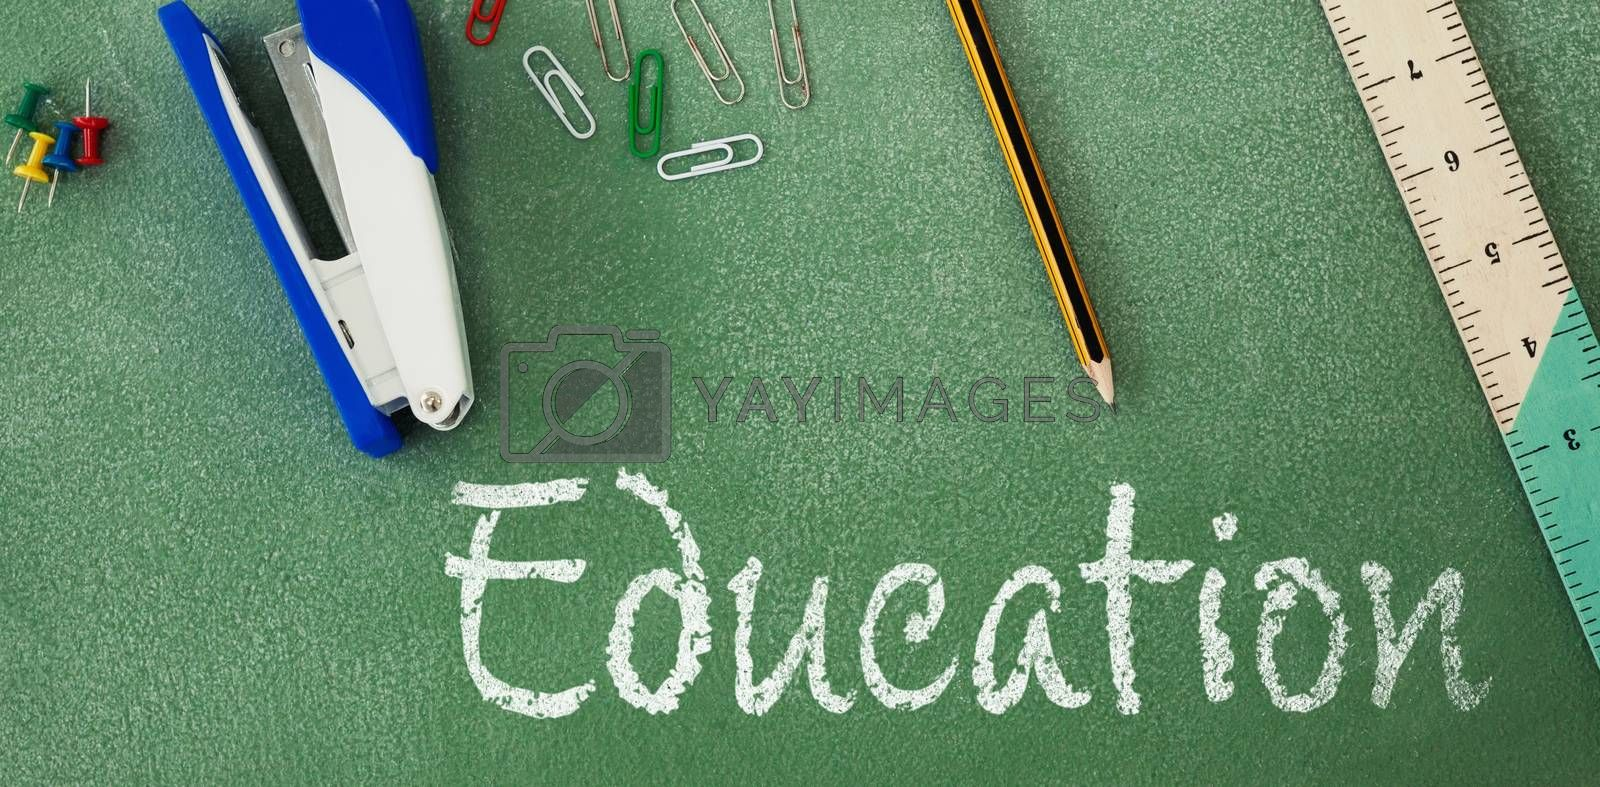 Education text against white background against high angle view of stapler and ruler on table